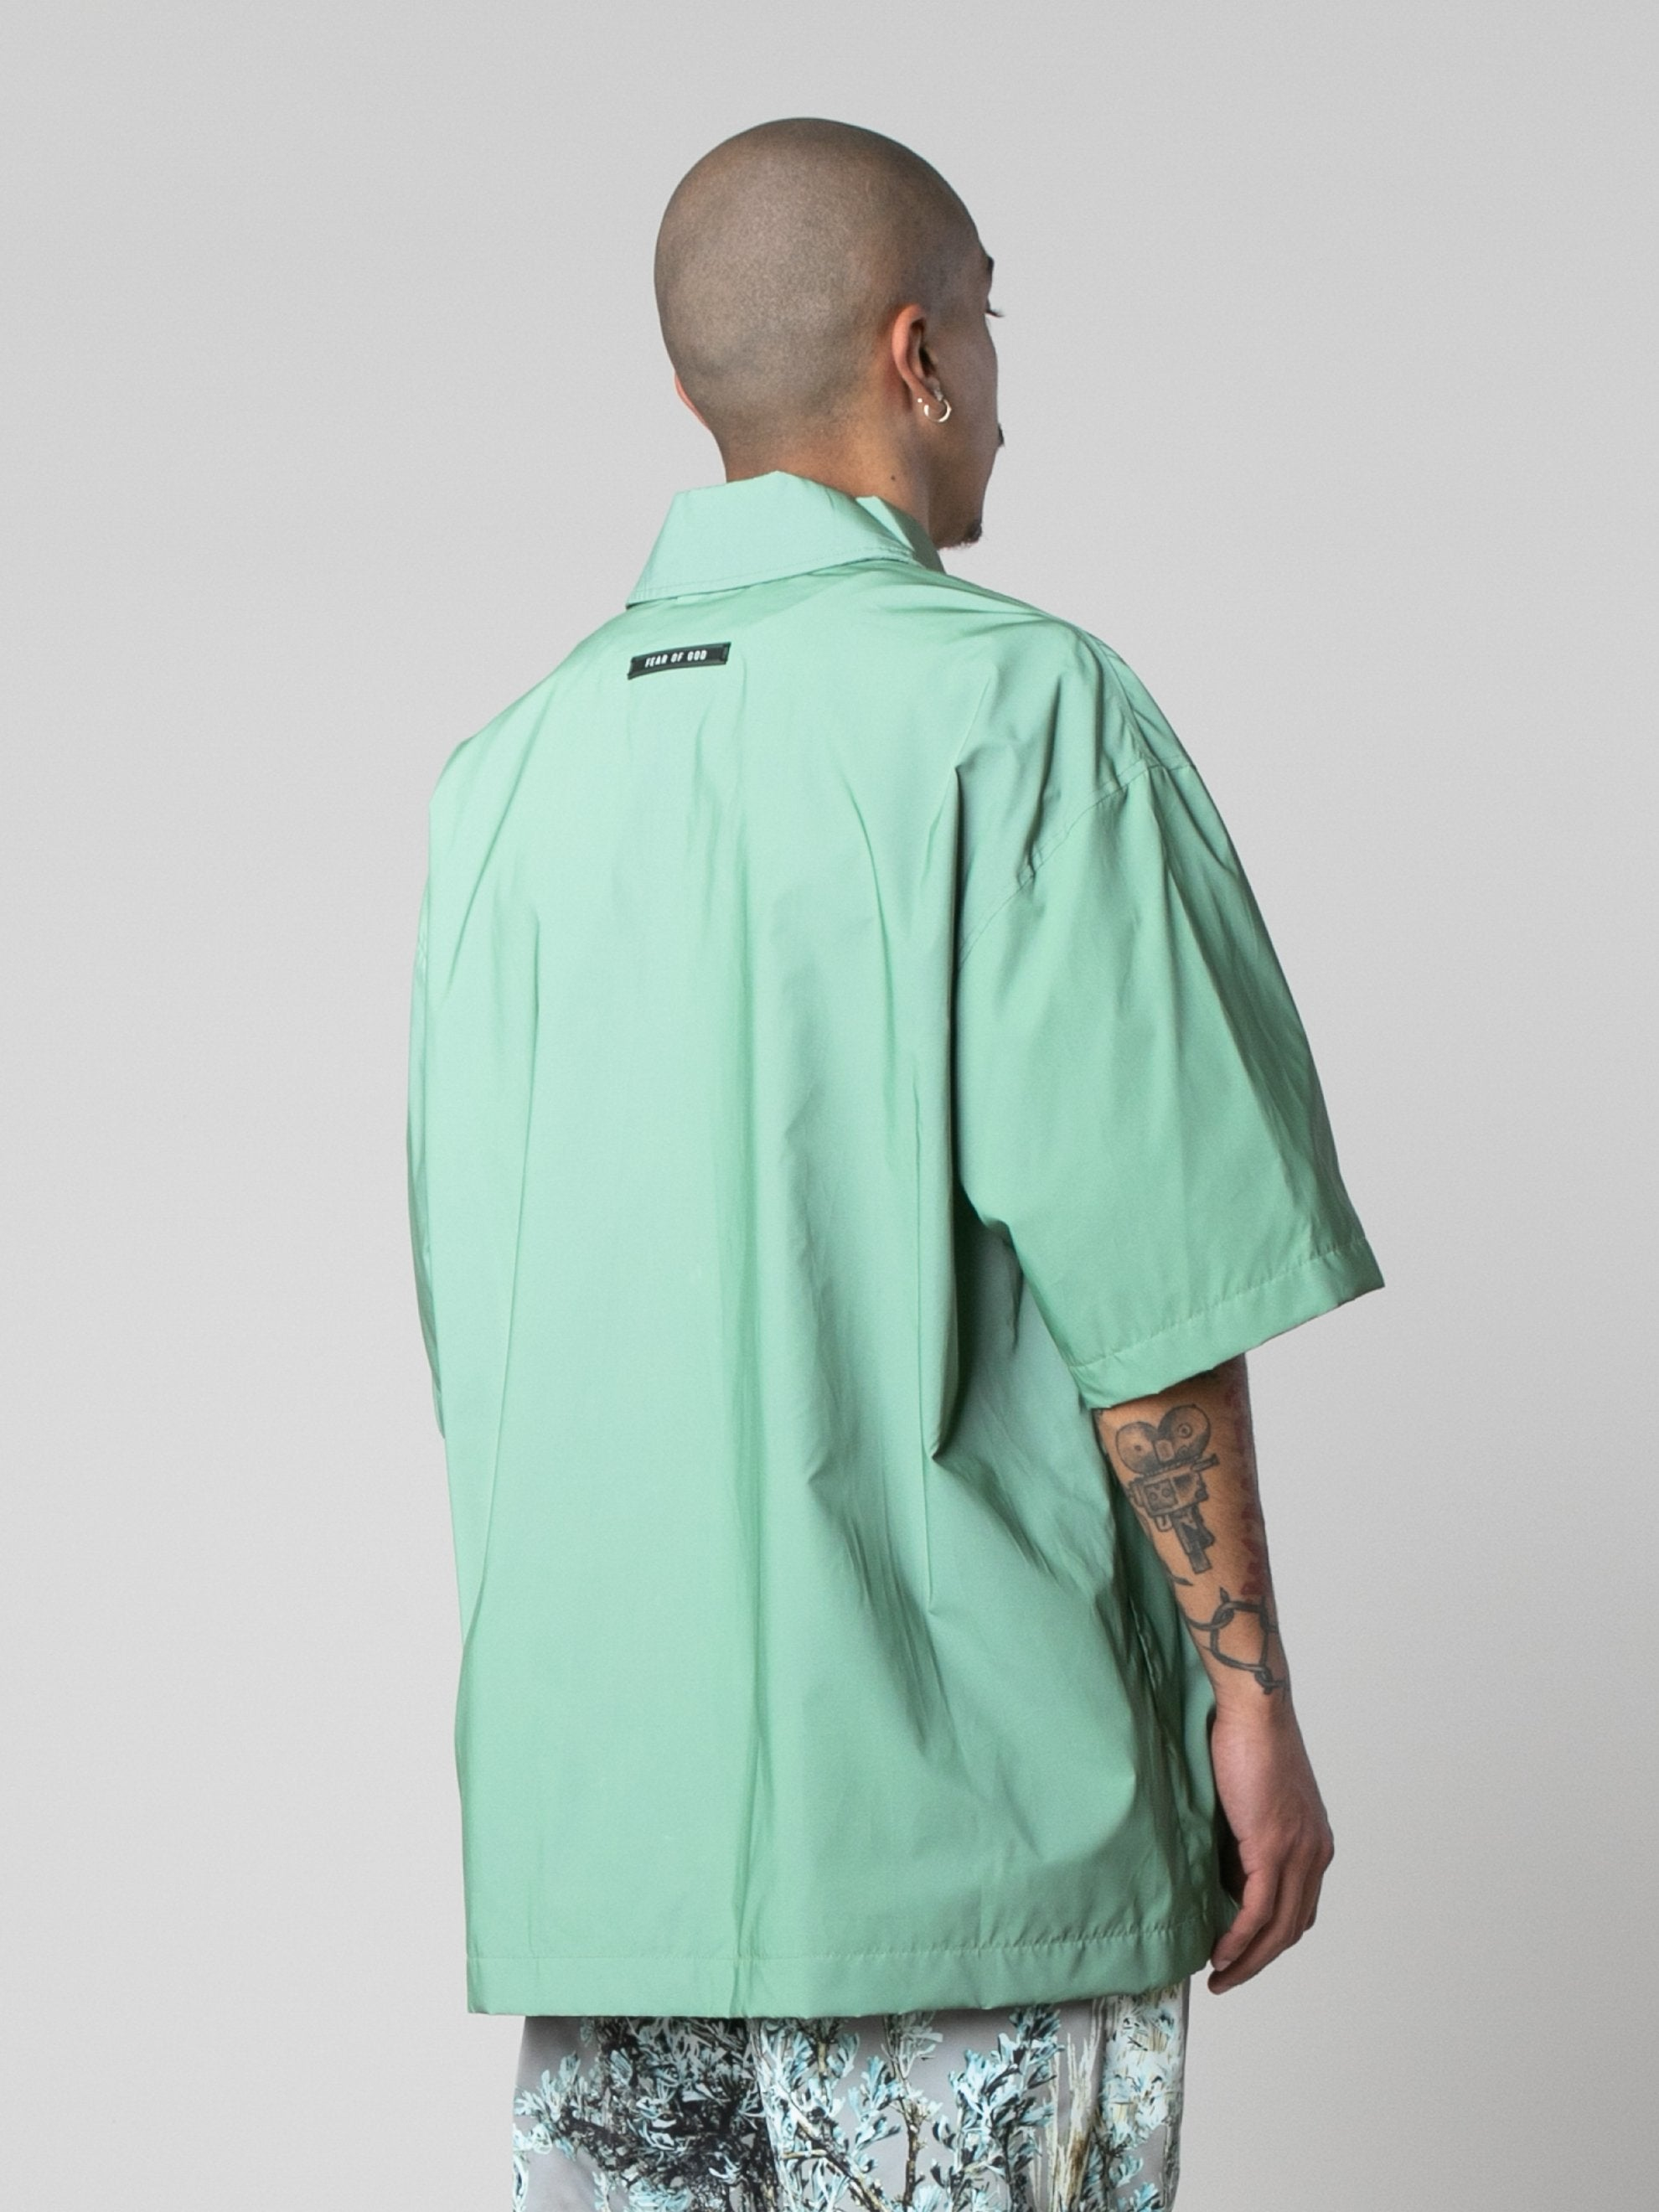 Army Iridescent Oversized Nylon Shirt 5